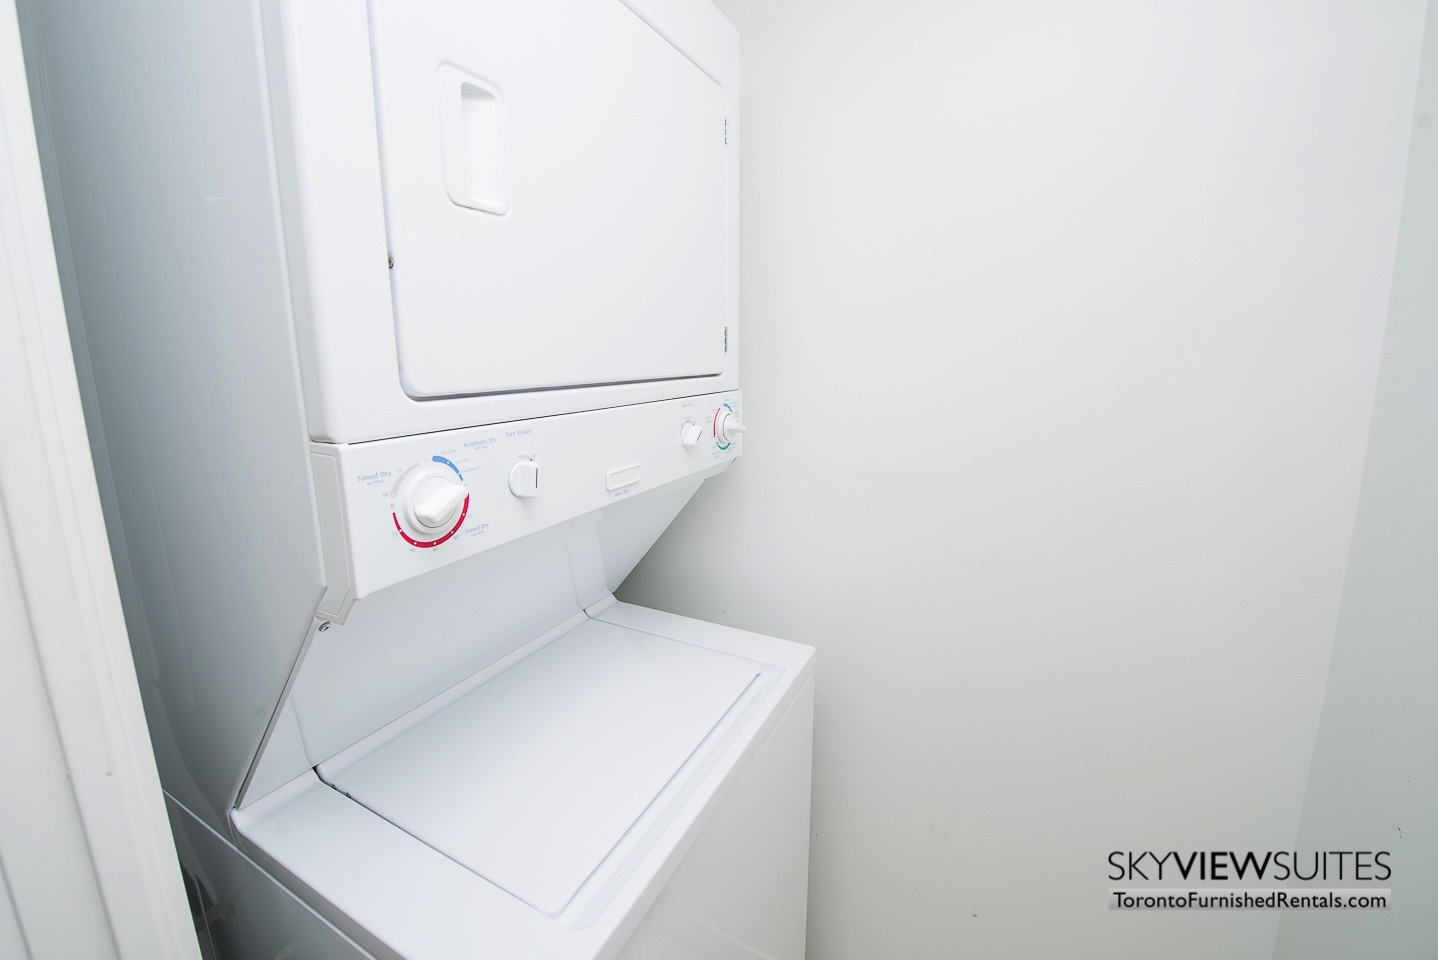 MLS furnished condo toronto washer unit